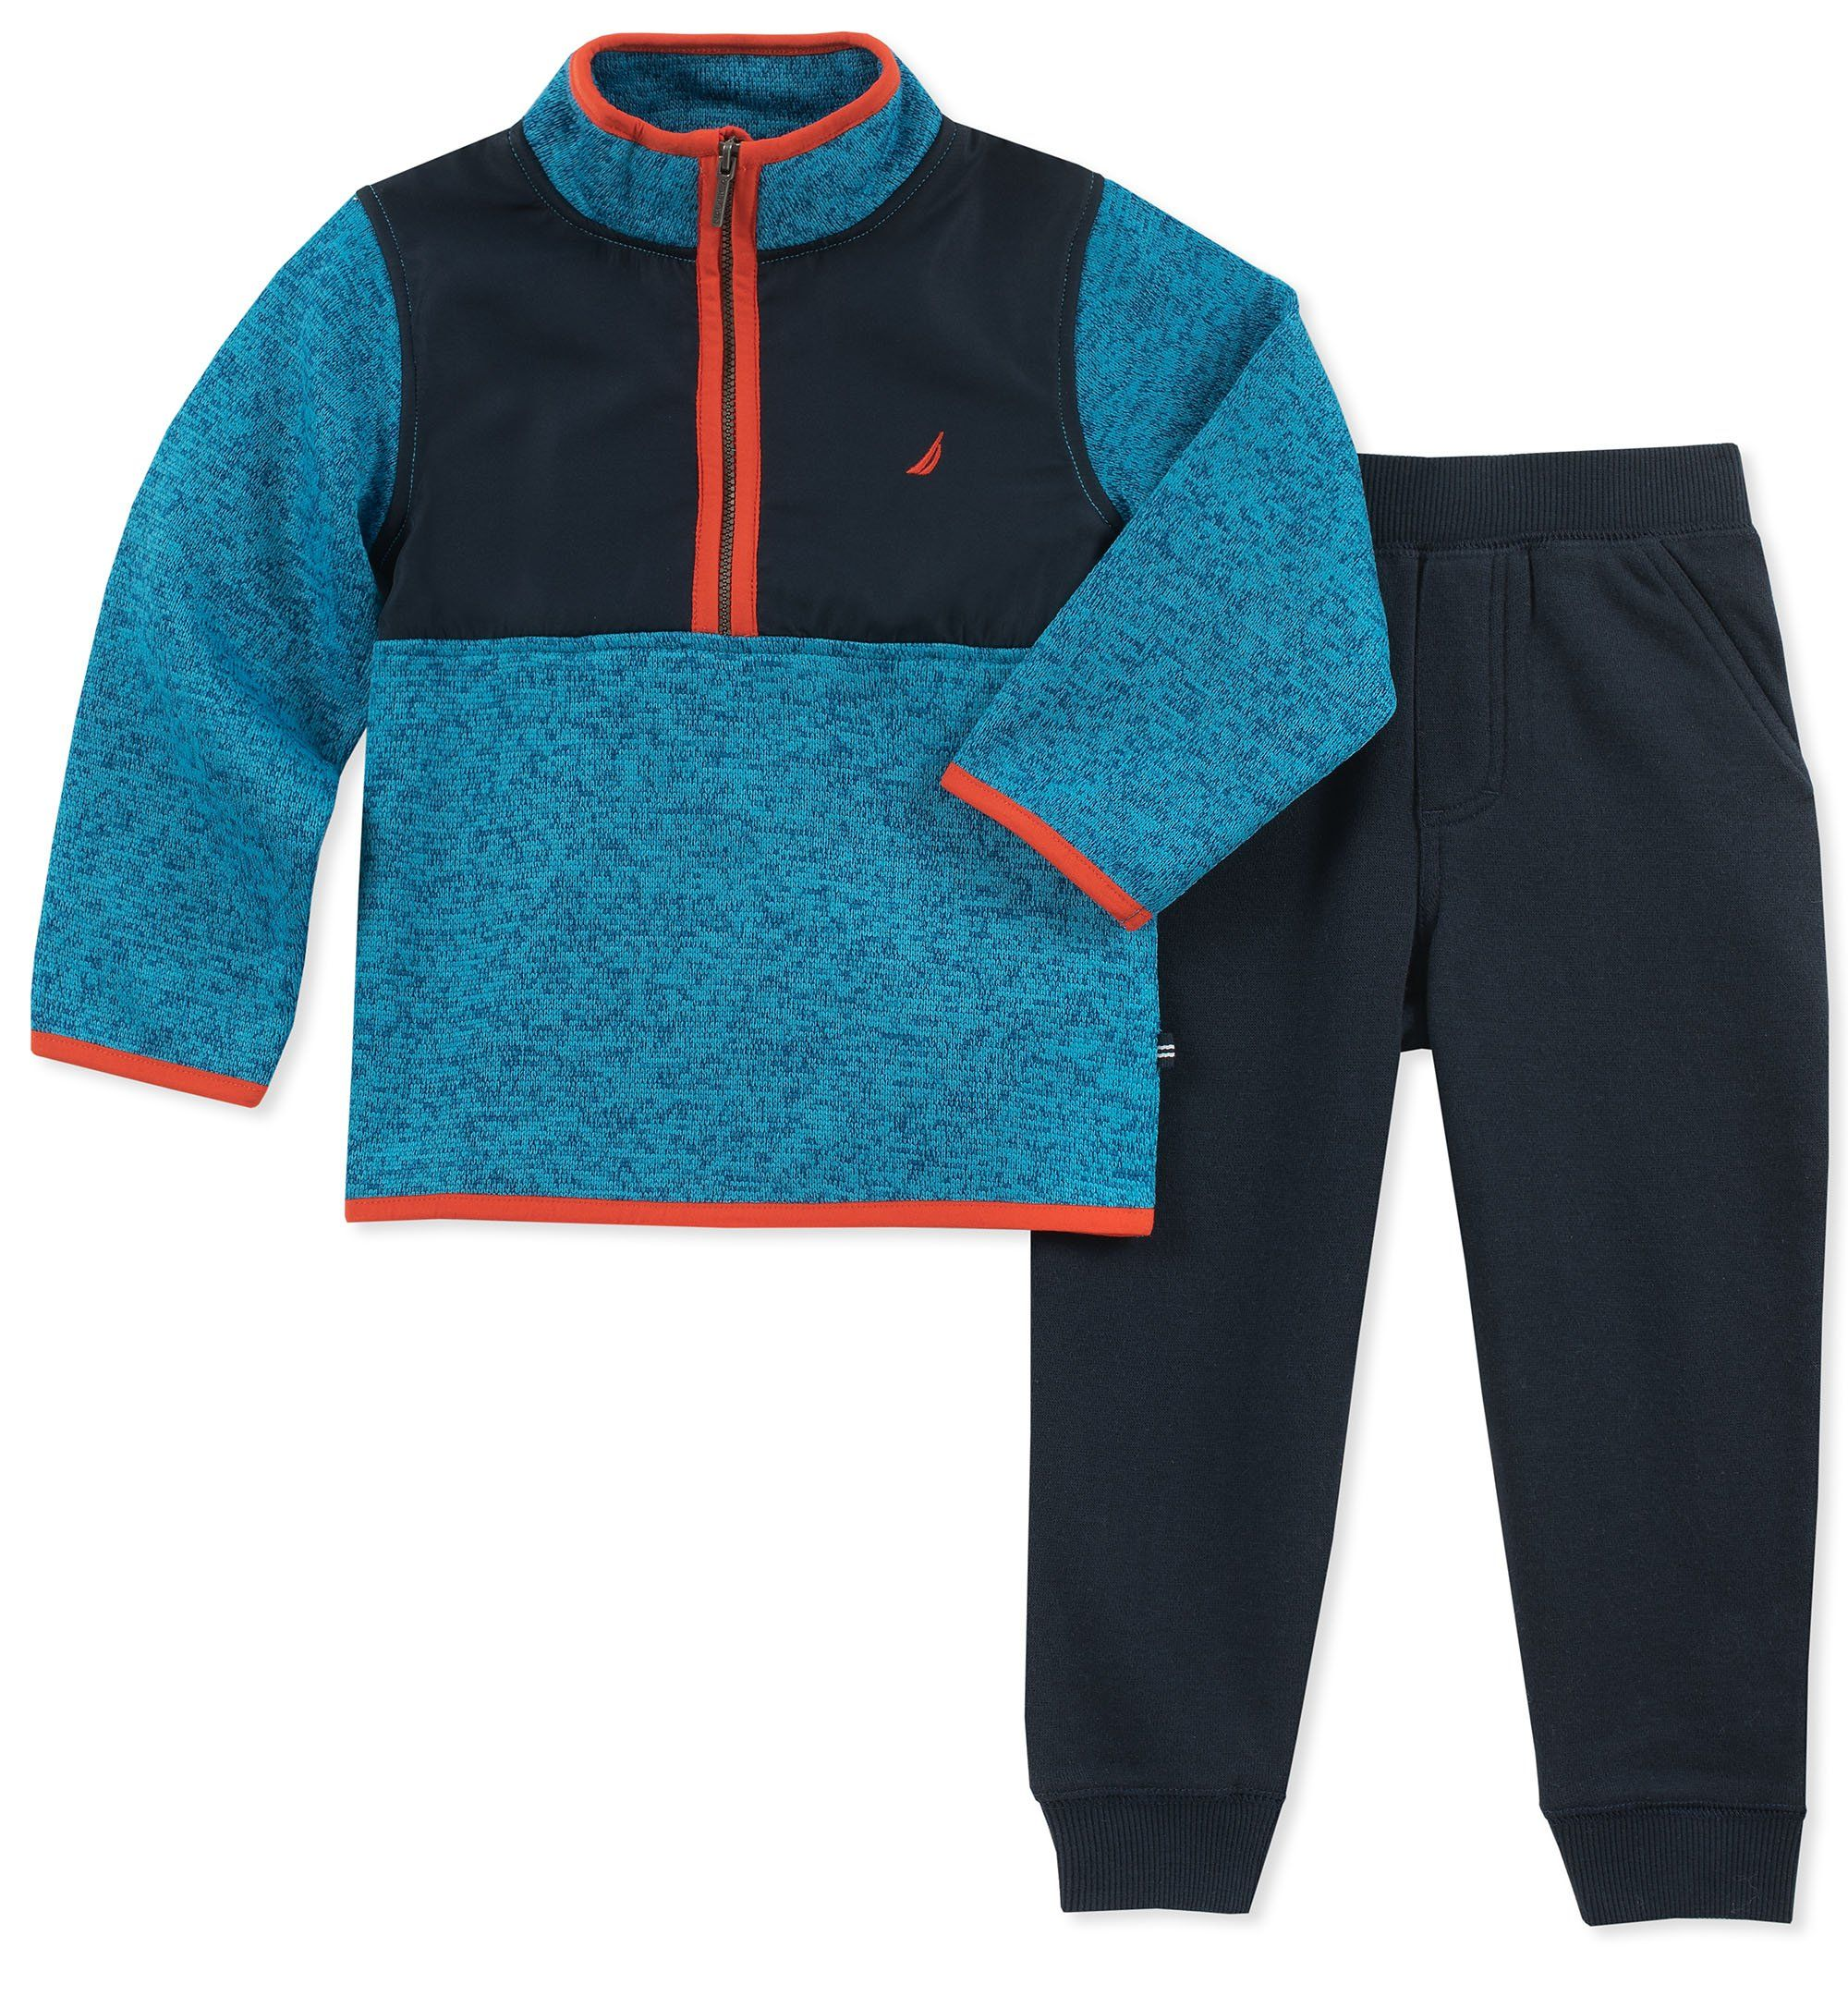 ca7c05d9ca86 Nautica Sets KHQ RJ7QG Kids and Baby 2 Pieces Sweater Pants Blue Navy Orange  36 Months   You can obtain extra information at the image link.